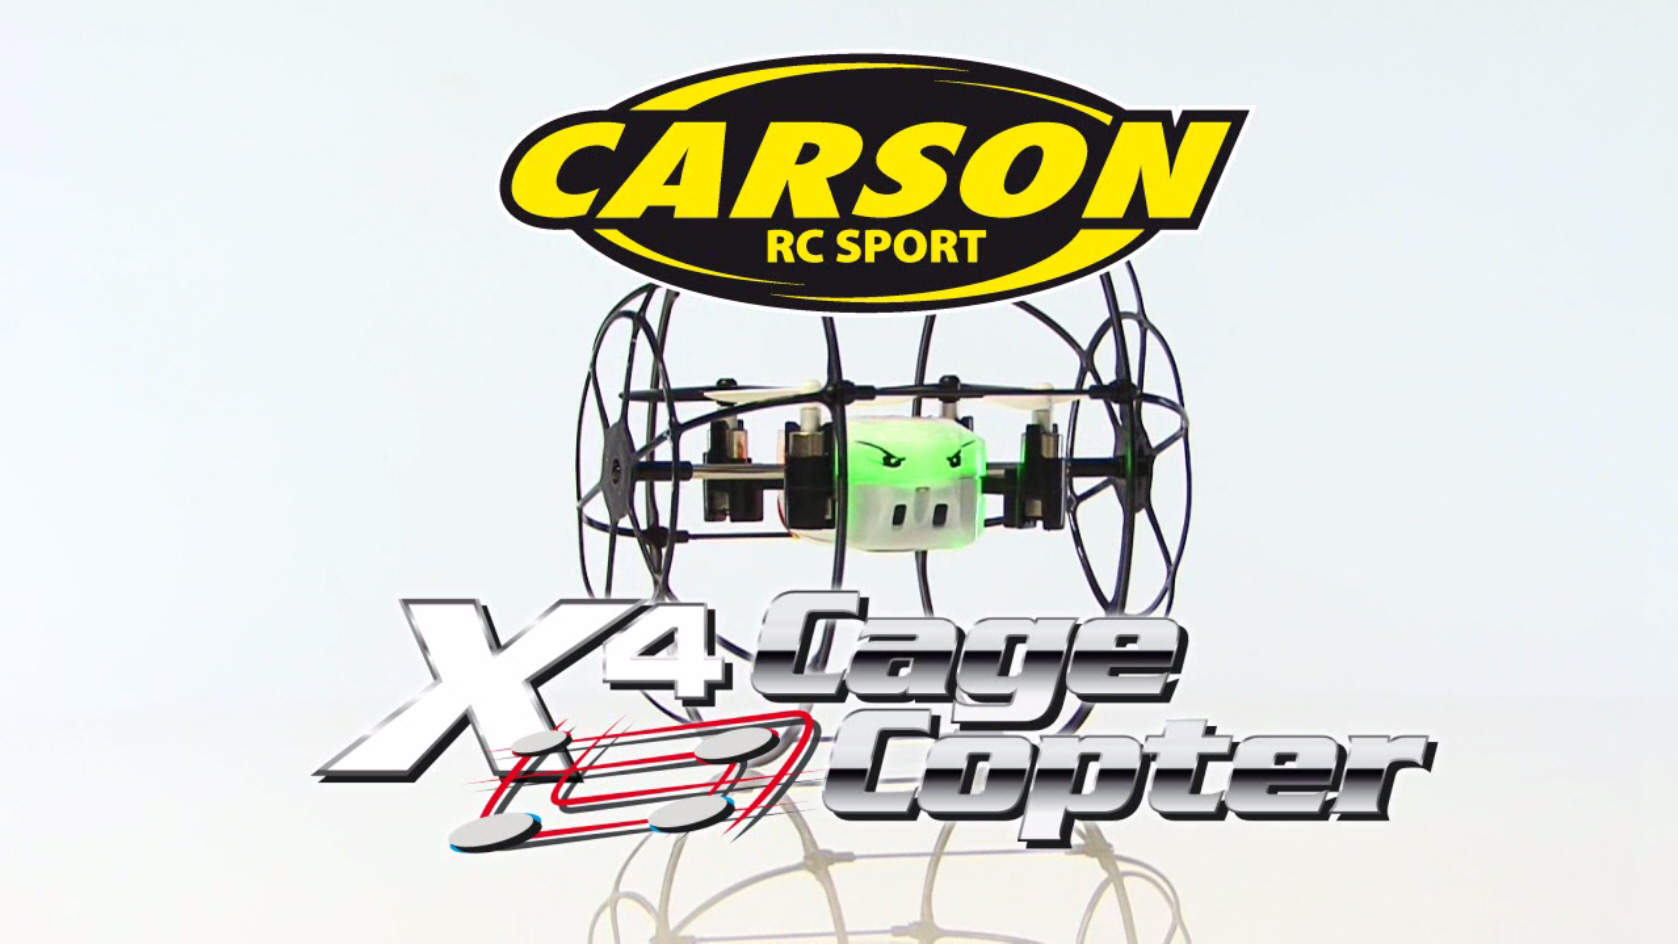 X4 Cage Copter 2.4 GHz, 100% RTF